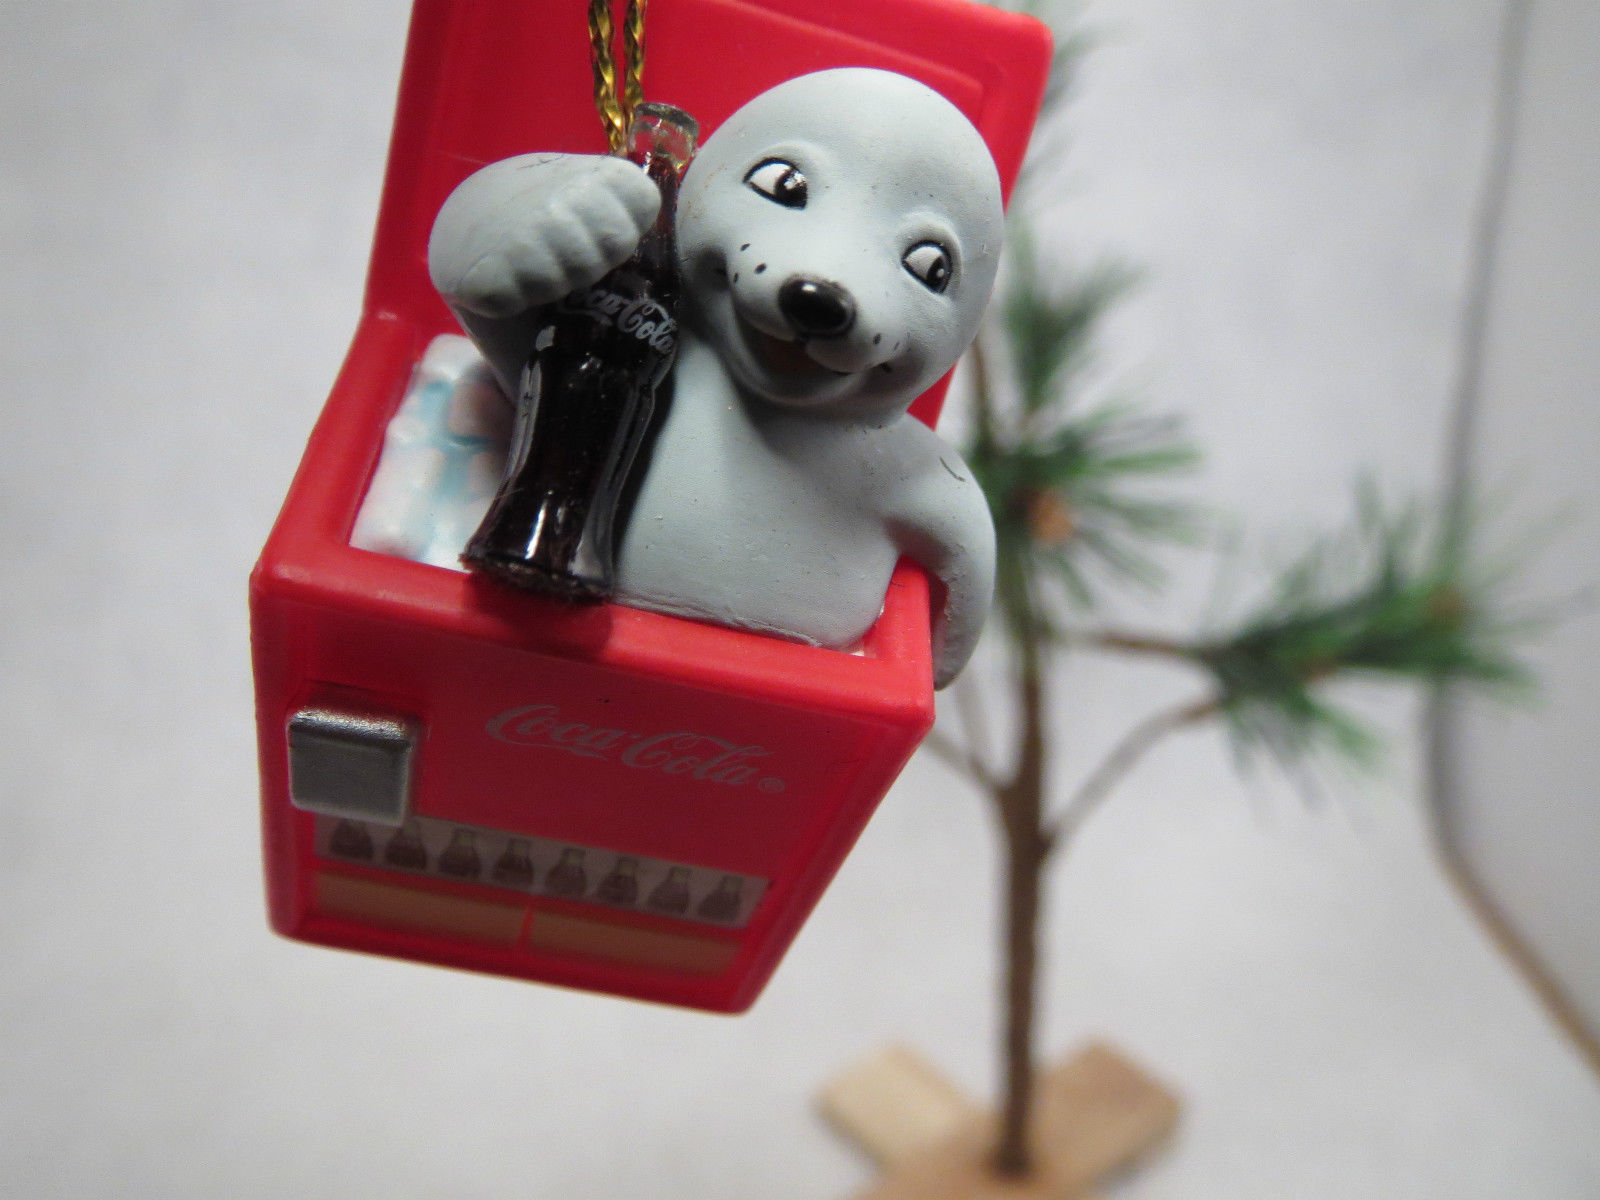 Cute 1999 Coca Cola Coke Baby Seal in Ice Chest Bottle Cooler Christmas Ornament